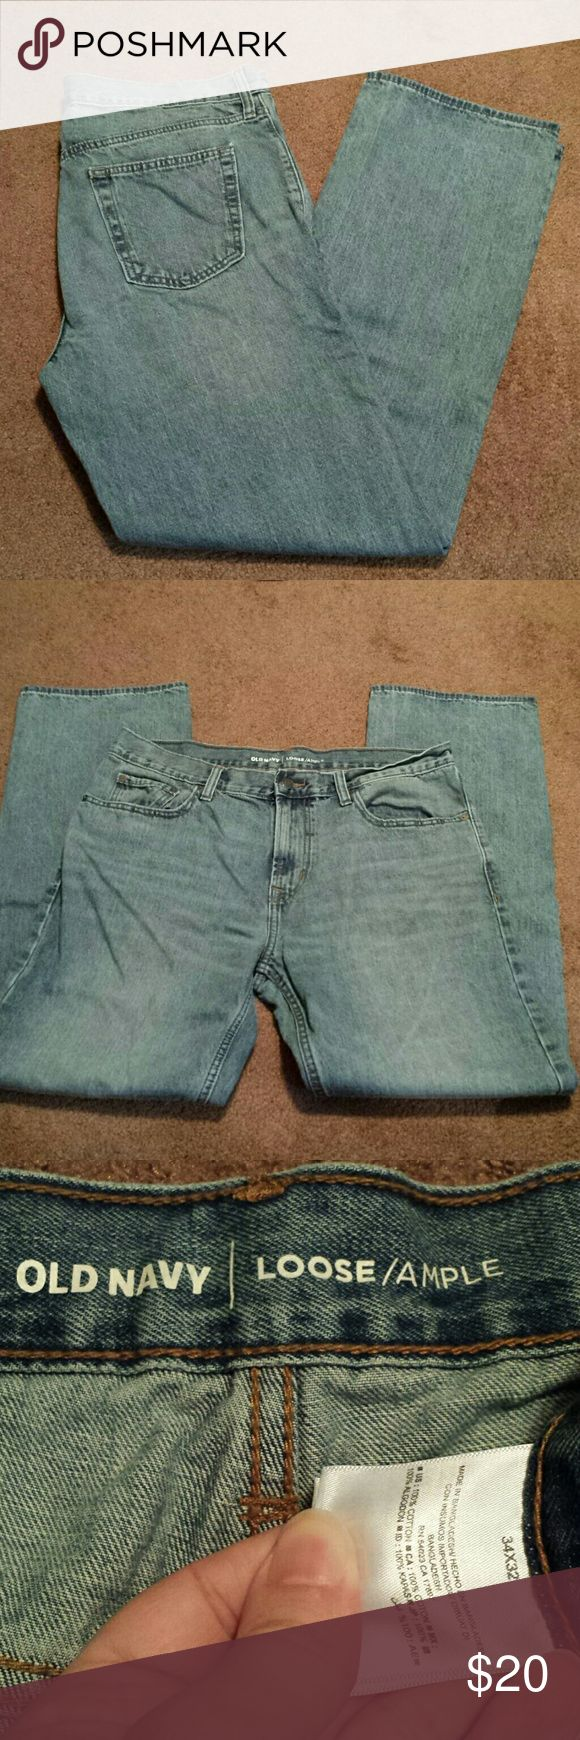 Mens old navy light wash Size 34x32 loose fit jeans. My husband only wore them once. Old Navy Jeans Relaxed